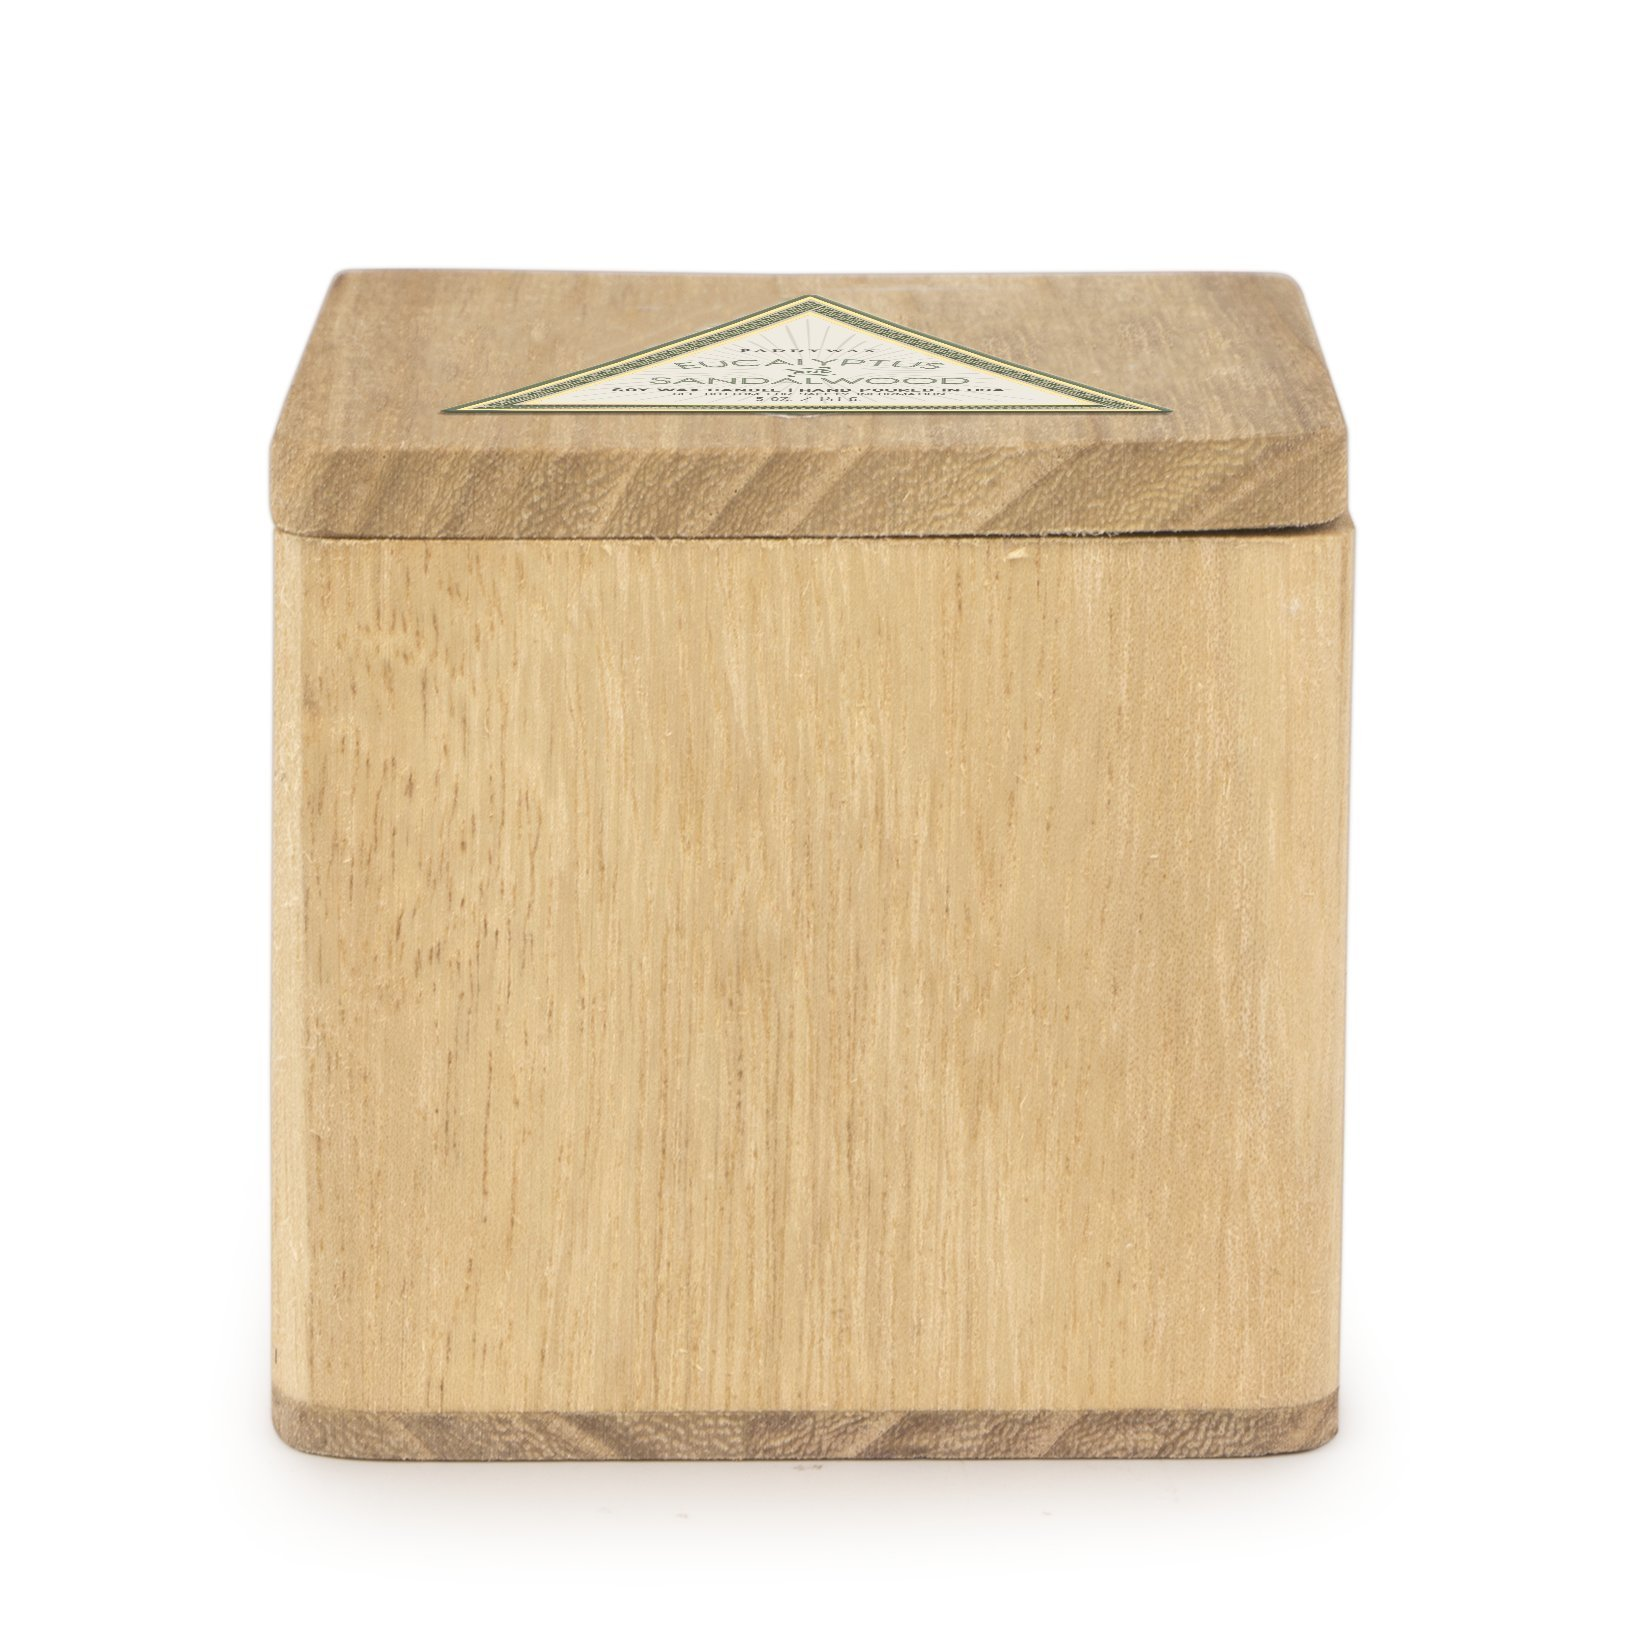 Paddywax Woods Collection Scented Soy Wax Candle in Mango Wood, 5-Ounce, Eucalyptus & Sandlewood